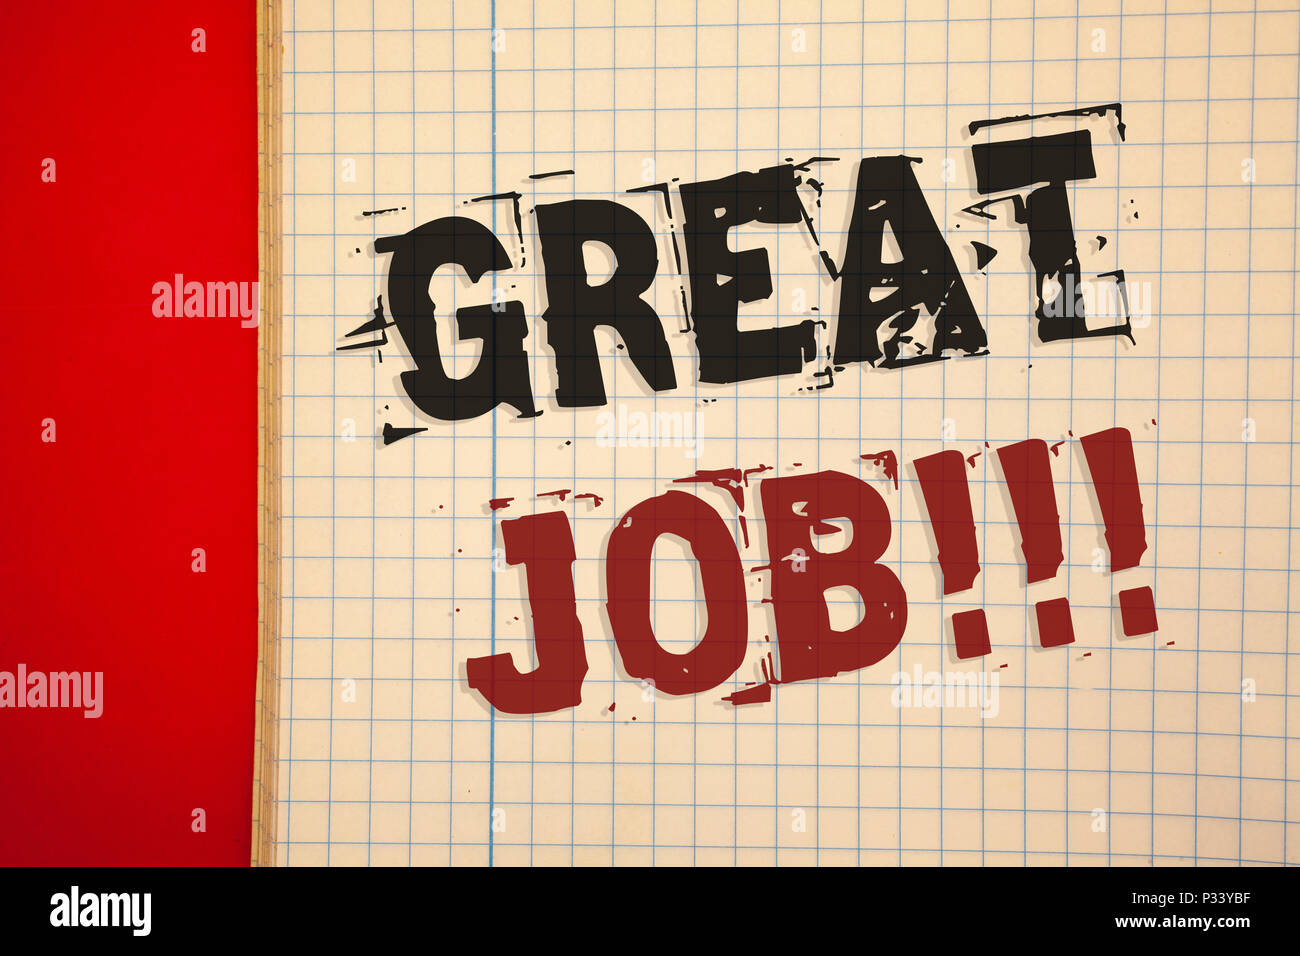 Words Writing Textss Great Job Motivational Call Business Concept For Excellent Work Well Done Good Results Compliment Stock Photo Alamy